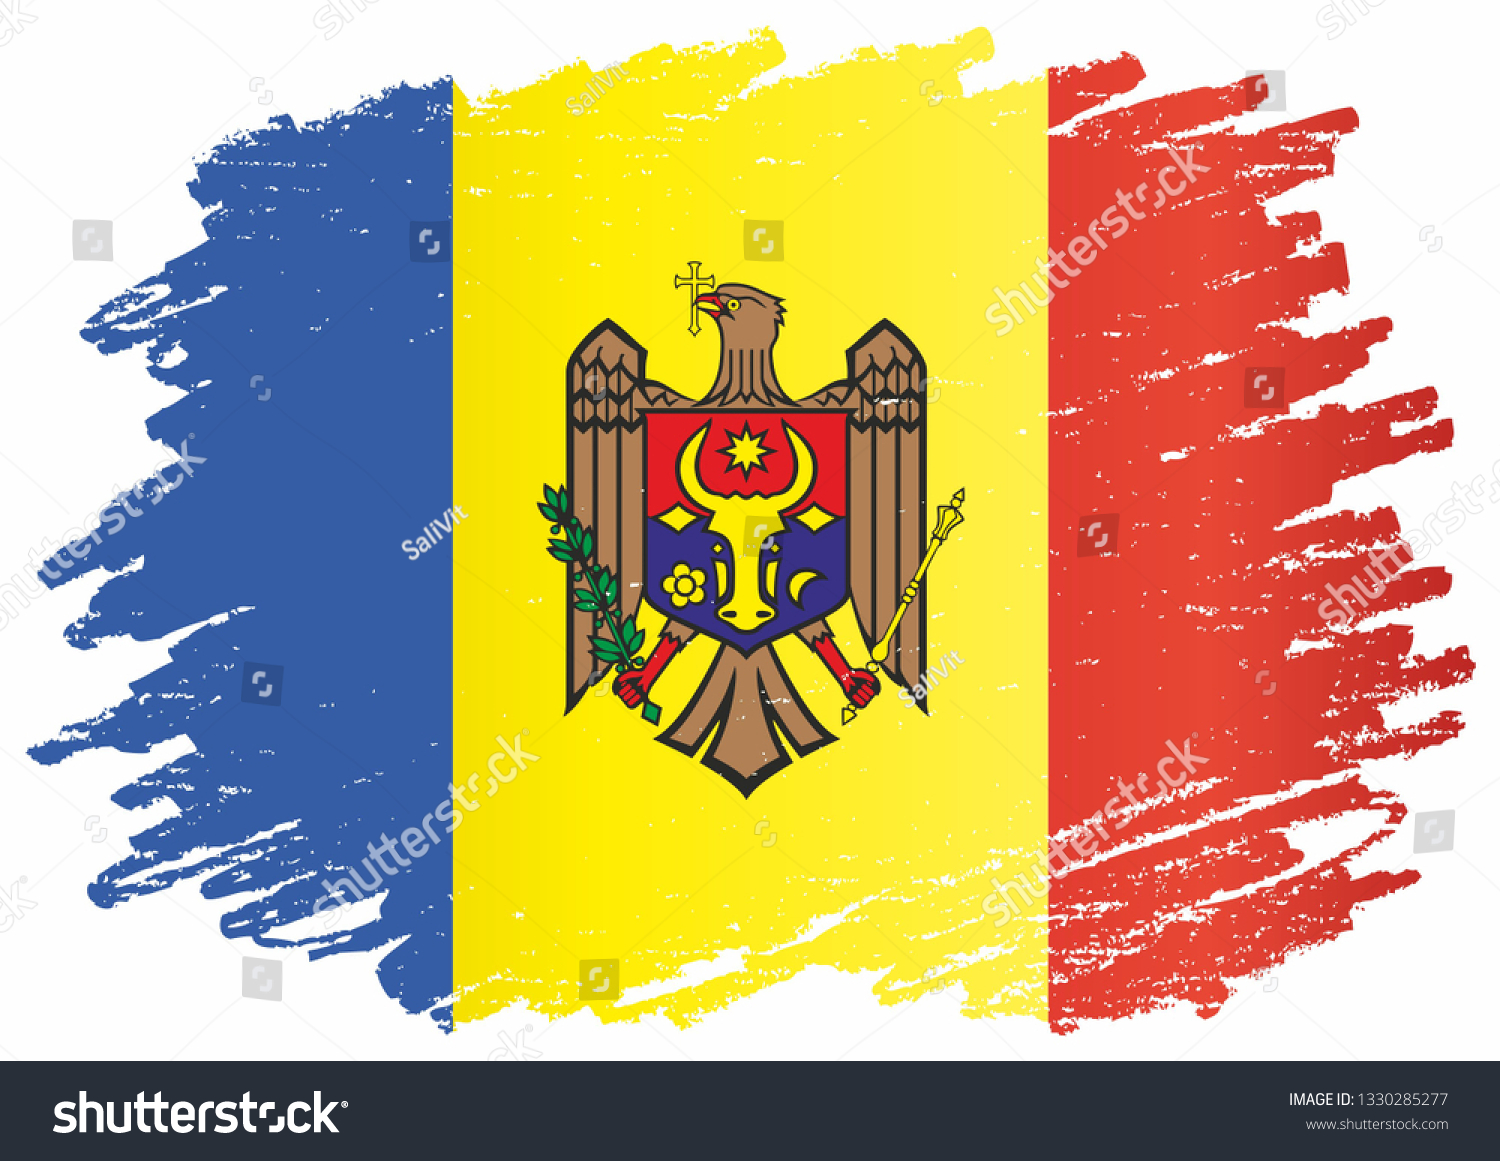 The InterNations Expat Guide for working and living in Moldova